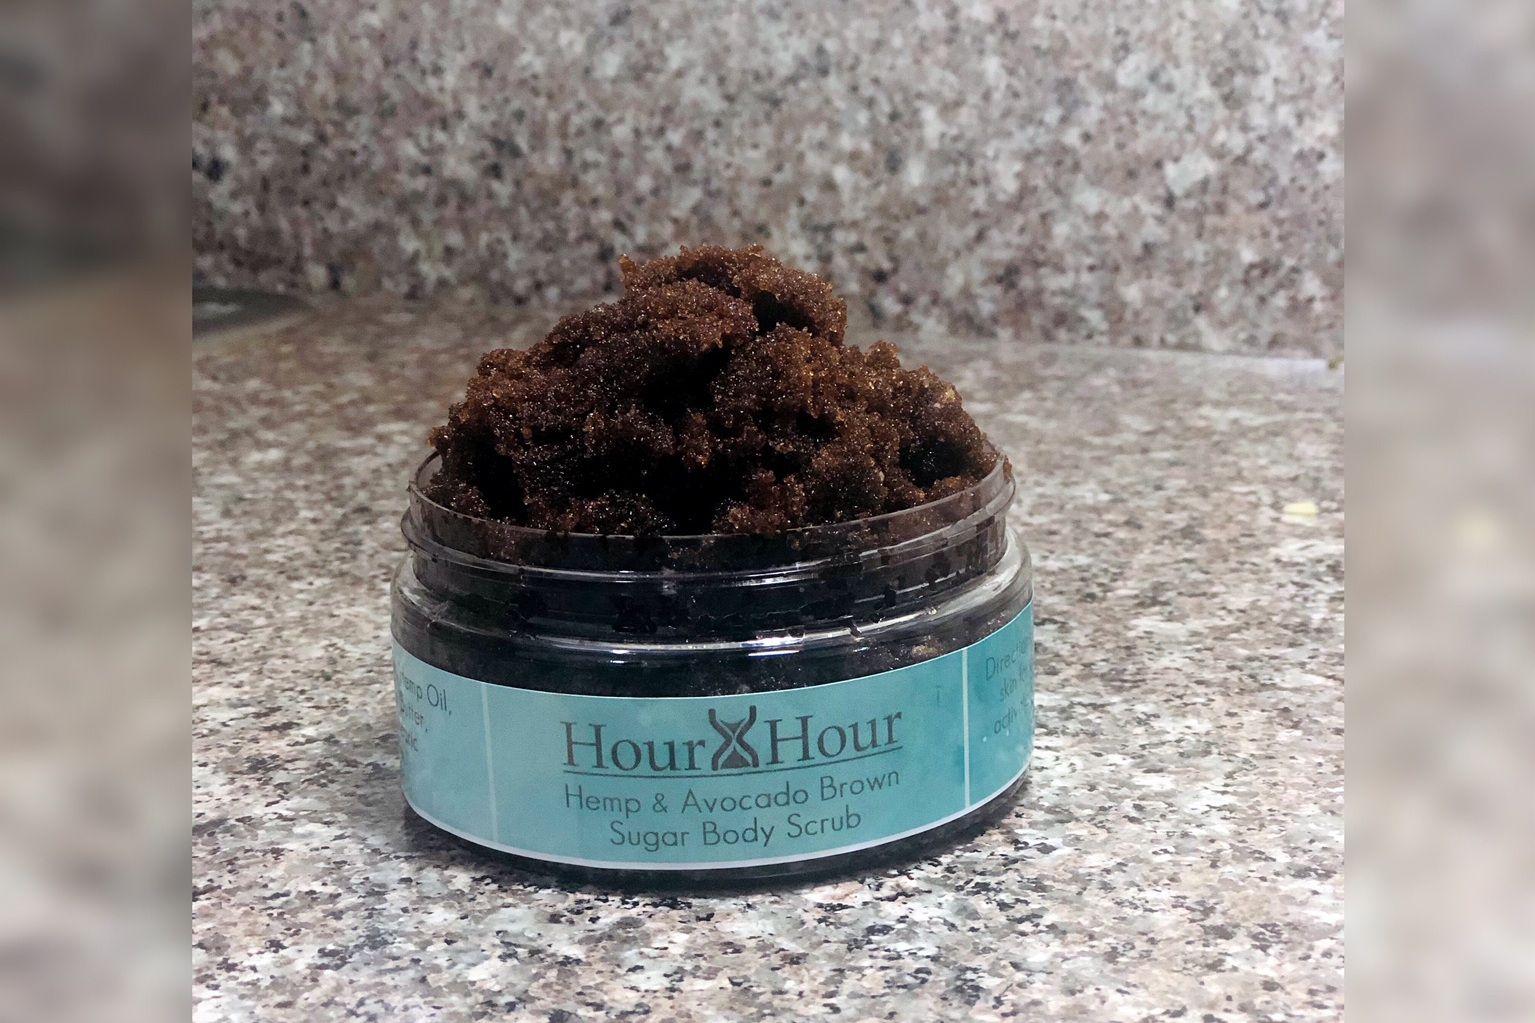 Hour-X-Hour-Hemp-Avocado-Body-Scrub